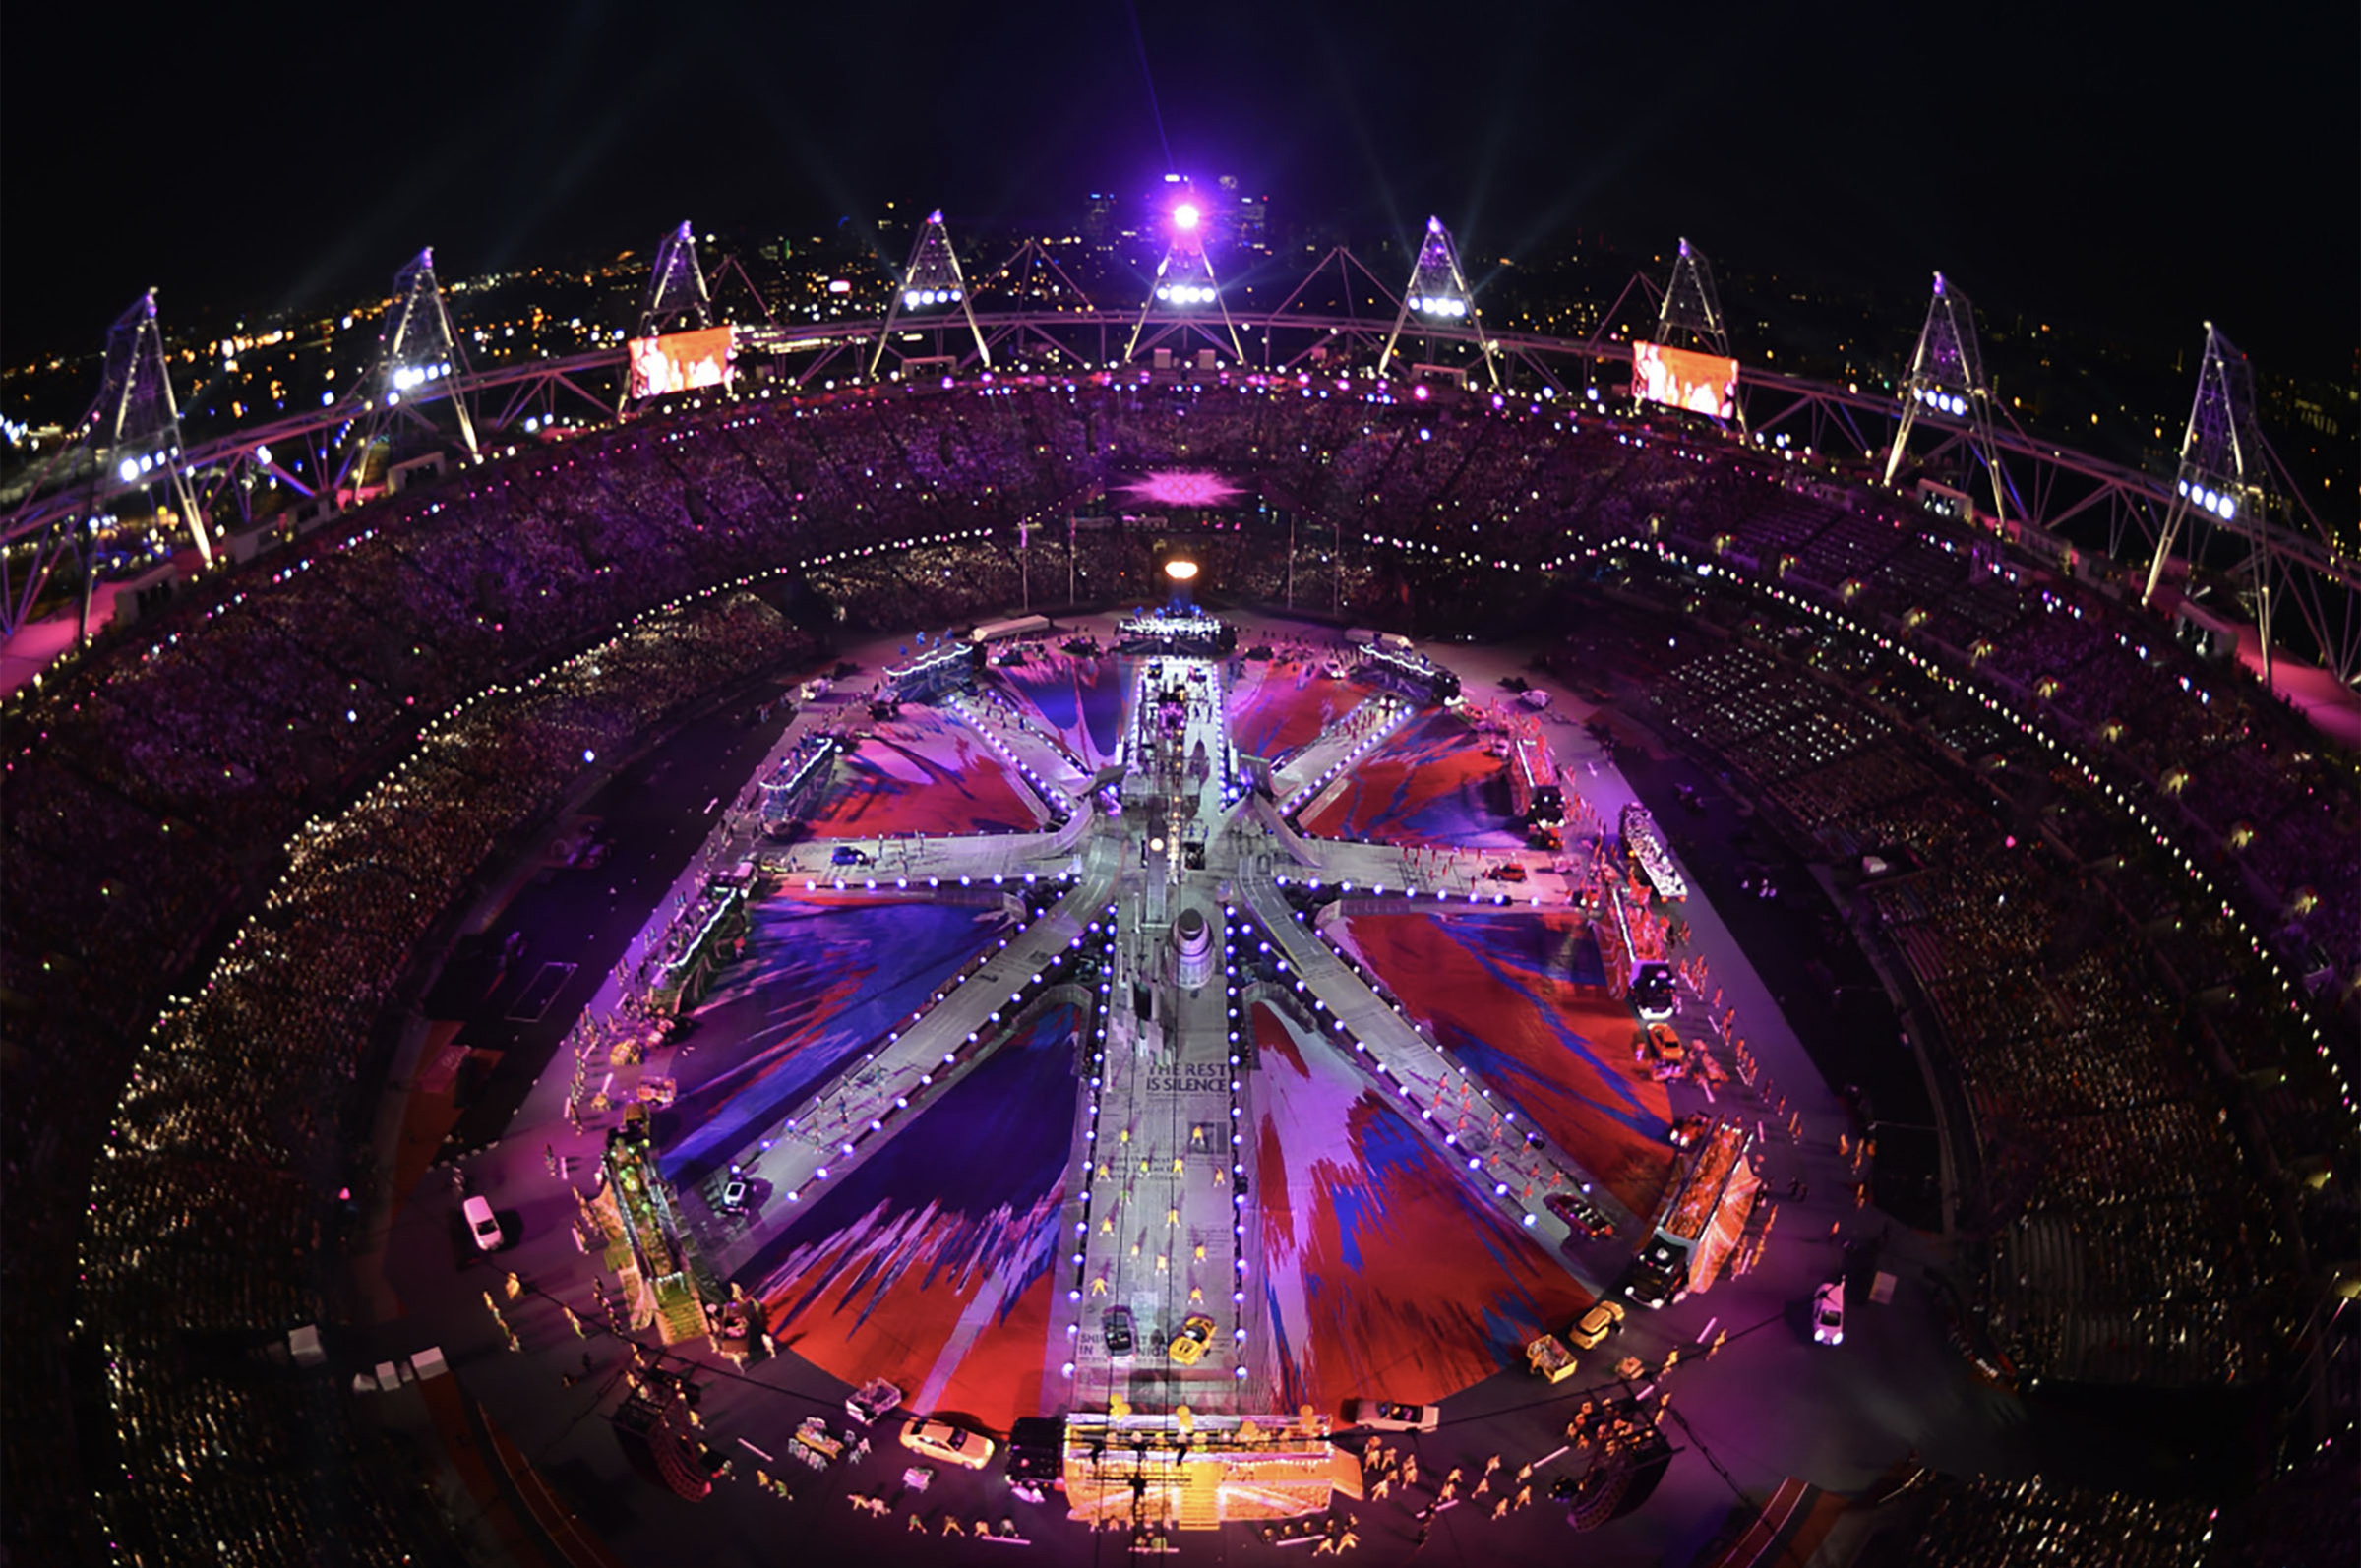 Luke Halls Studio — London Olympics Closing Ceremony 2012